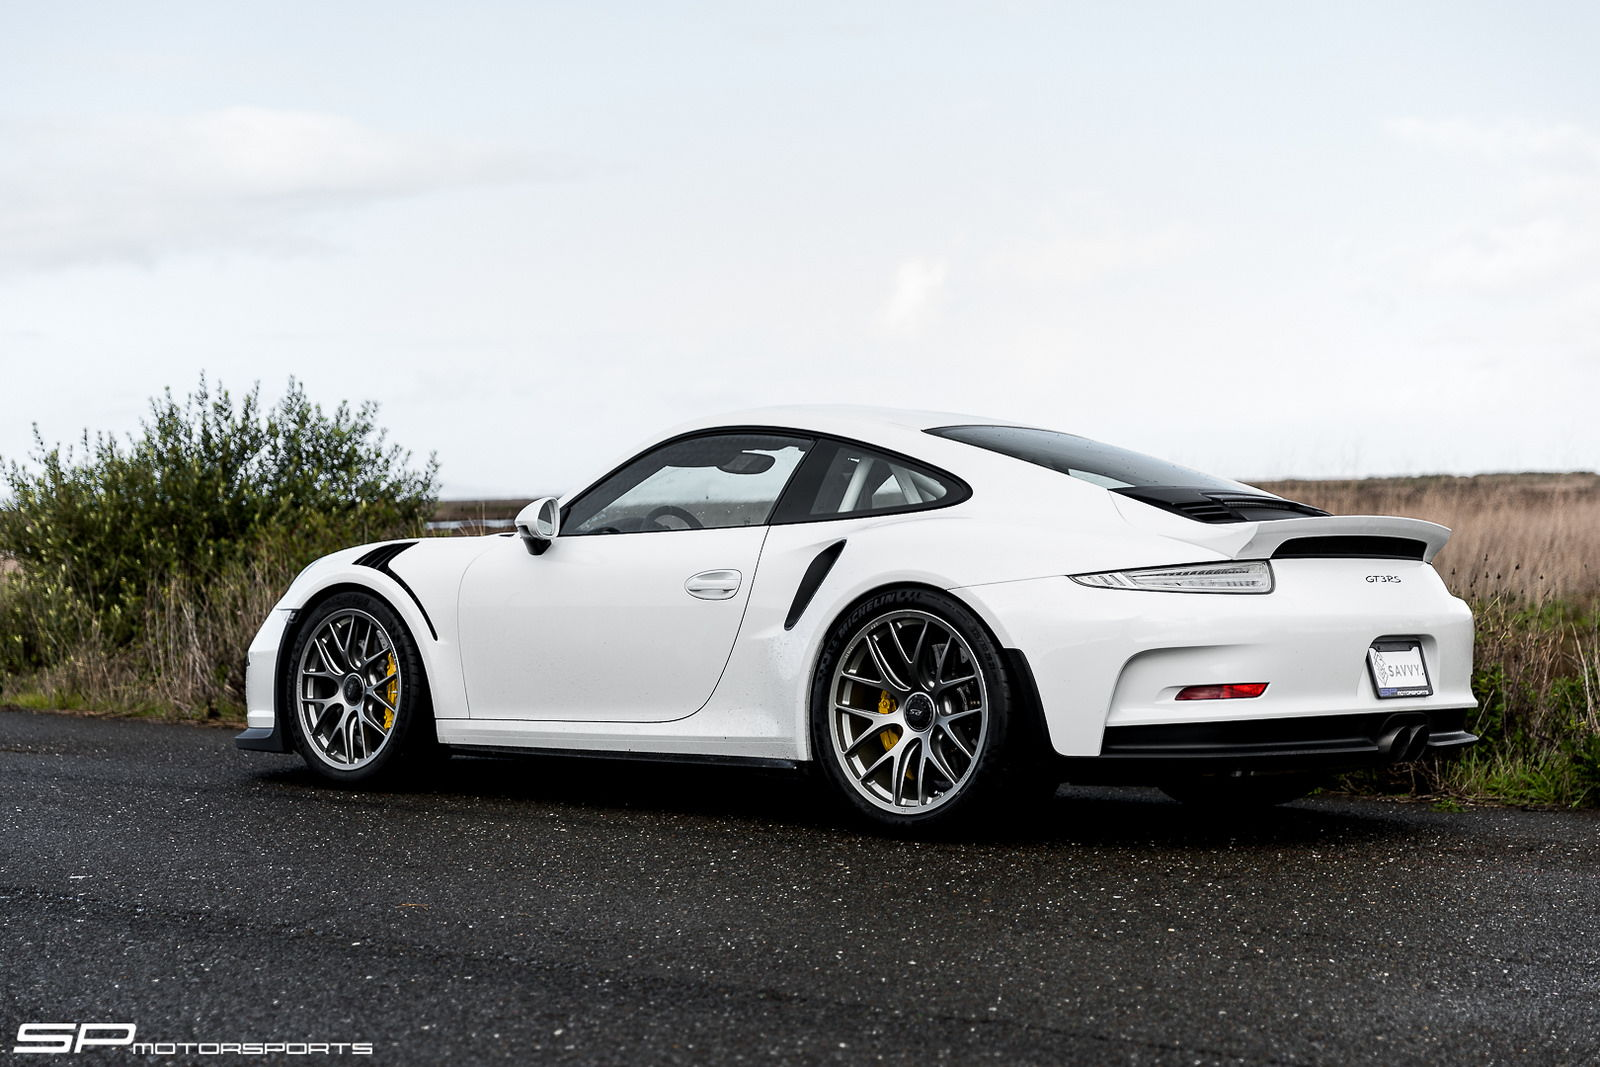 pics of gt3 rs without rear wing page 3 rennlist porsche discussion forums. Black Bedroom Furniture Sets. Home Design Ideas